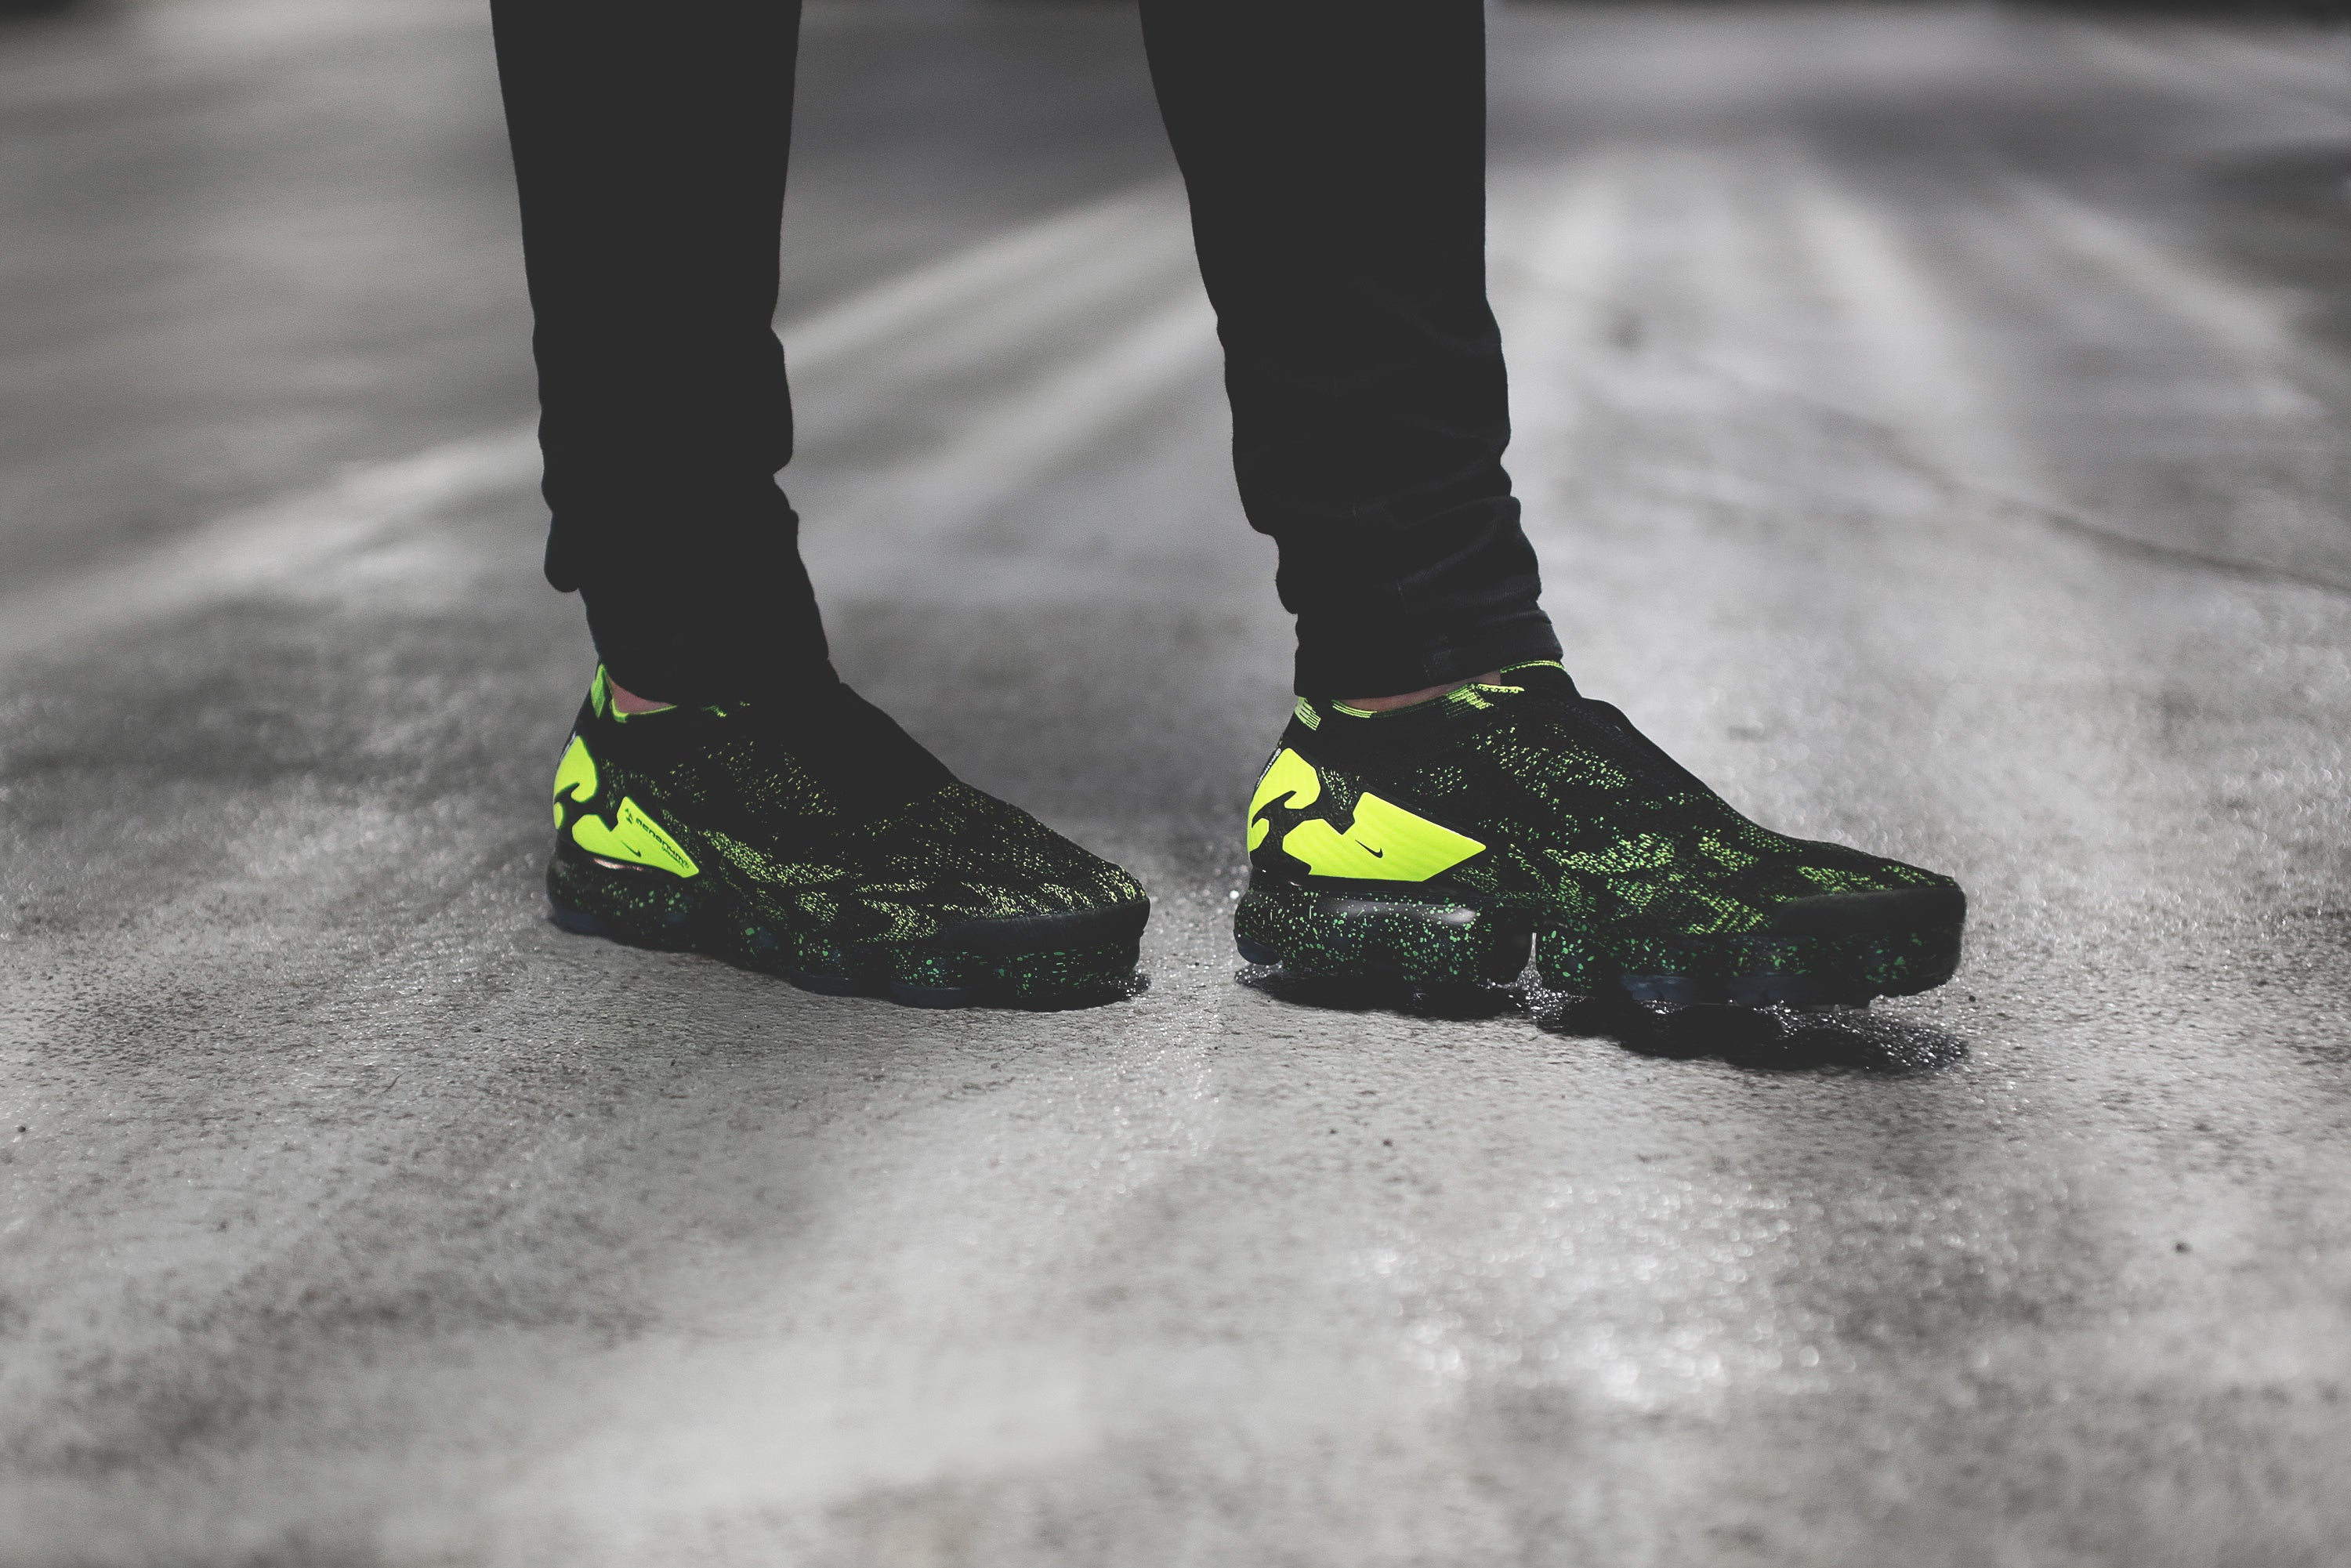 best loved 202c0 0a3dc AIR VAPORMAX MOC 2 X ACRONYM ® THE ILLUSIONAL JA